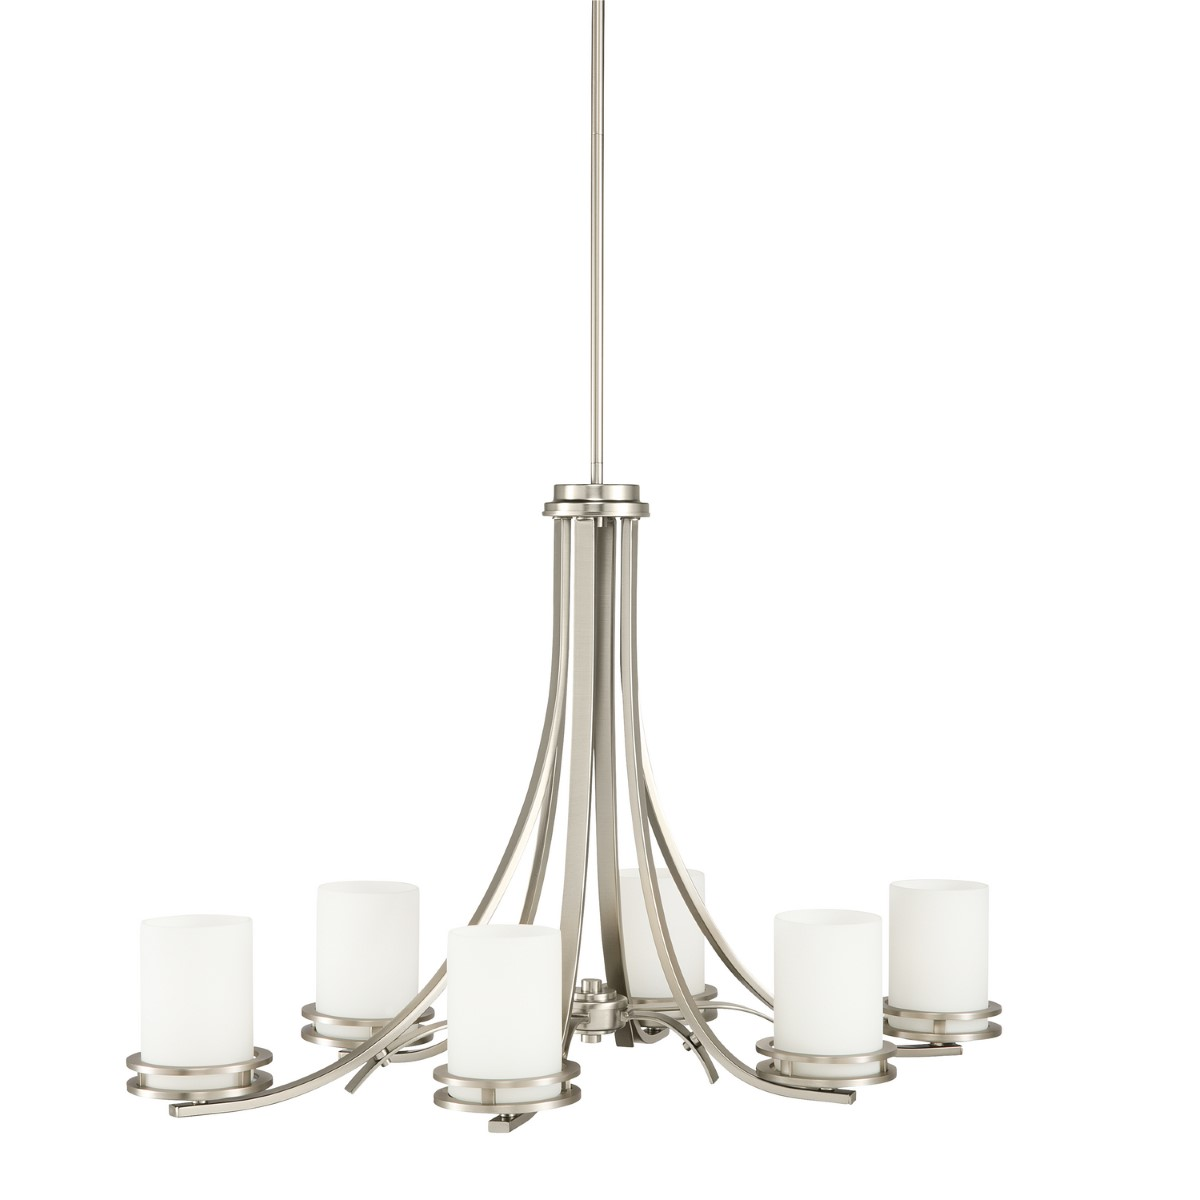 Kichler Hendrik Chandelier with Satin Etched Cased Opal Shade - Brushed Nickel (1673NI)